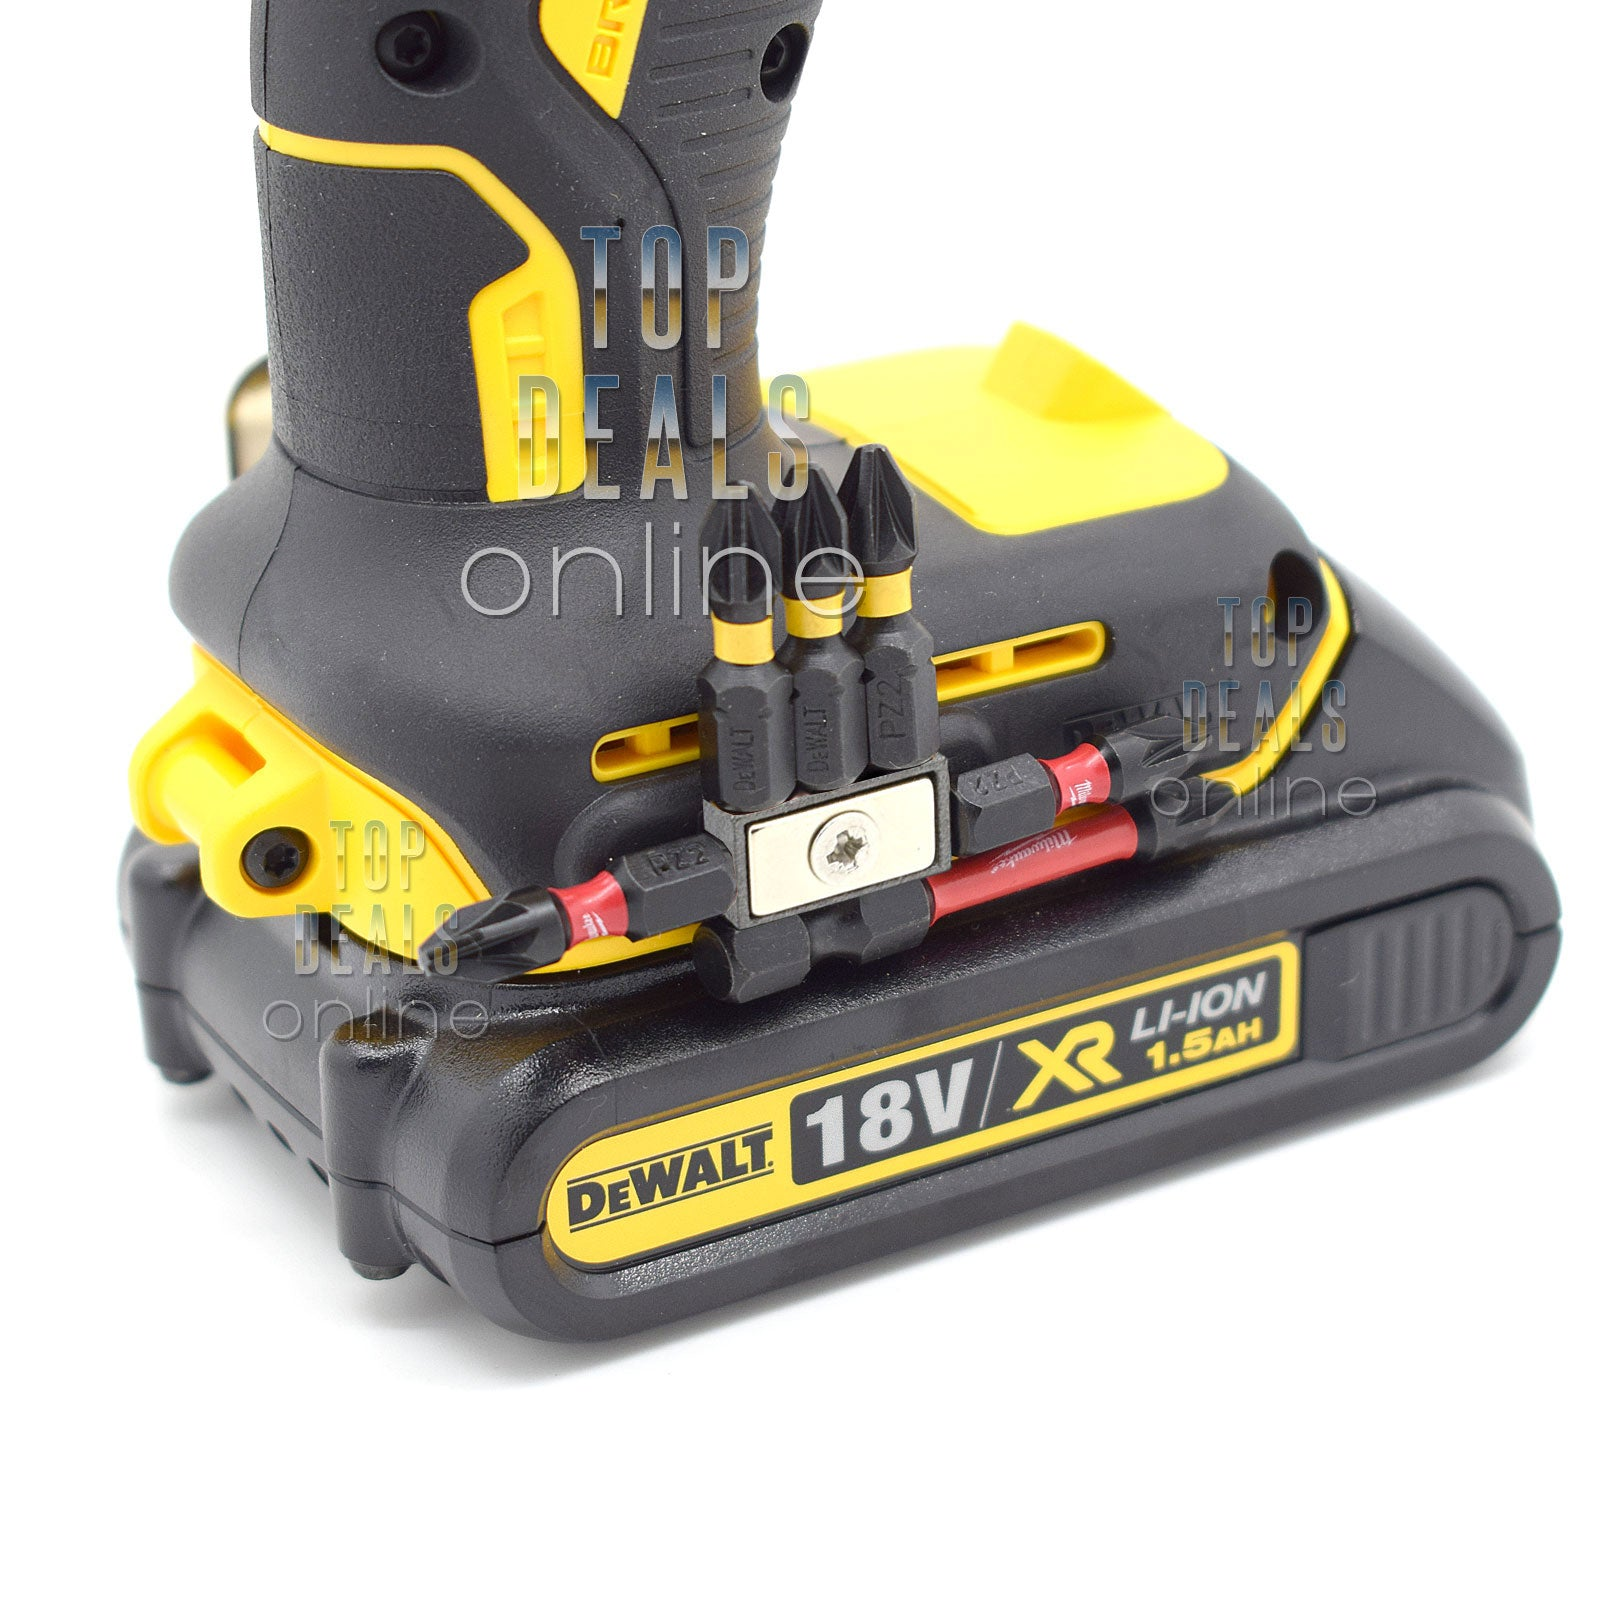 Dewalt Universal Magnetic Bit Holder 18v 10.8v Cordless Drills Impact XR Ranges